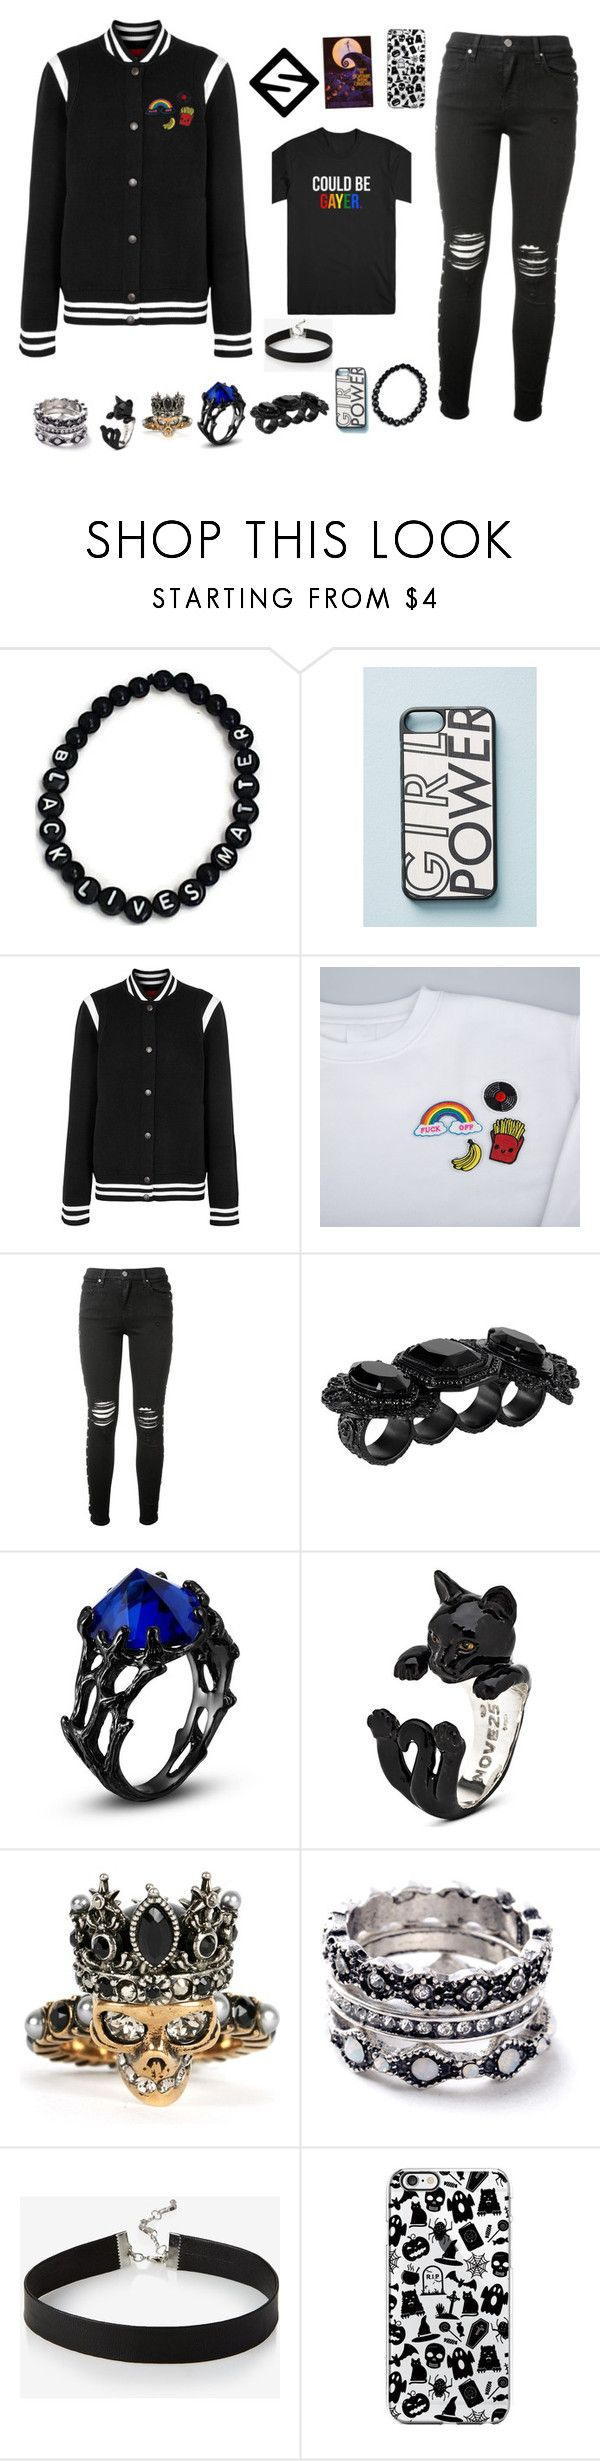 """Nico de Anglo"" by lil-funkio ❤ liked on Polyvore featuring Wood'd, Givenchy, AMIRI, Dsquared2, Alexander McQueen, WithChic, Express, men's fashion and menswear"